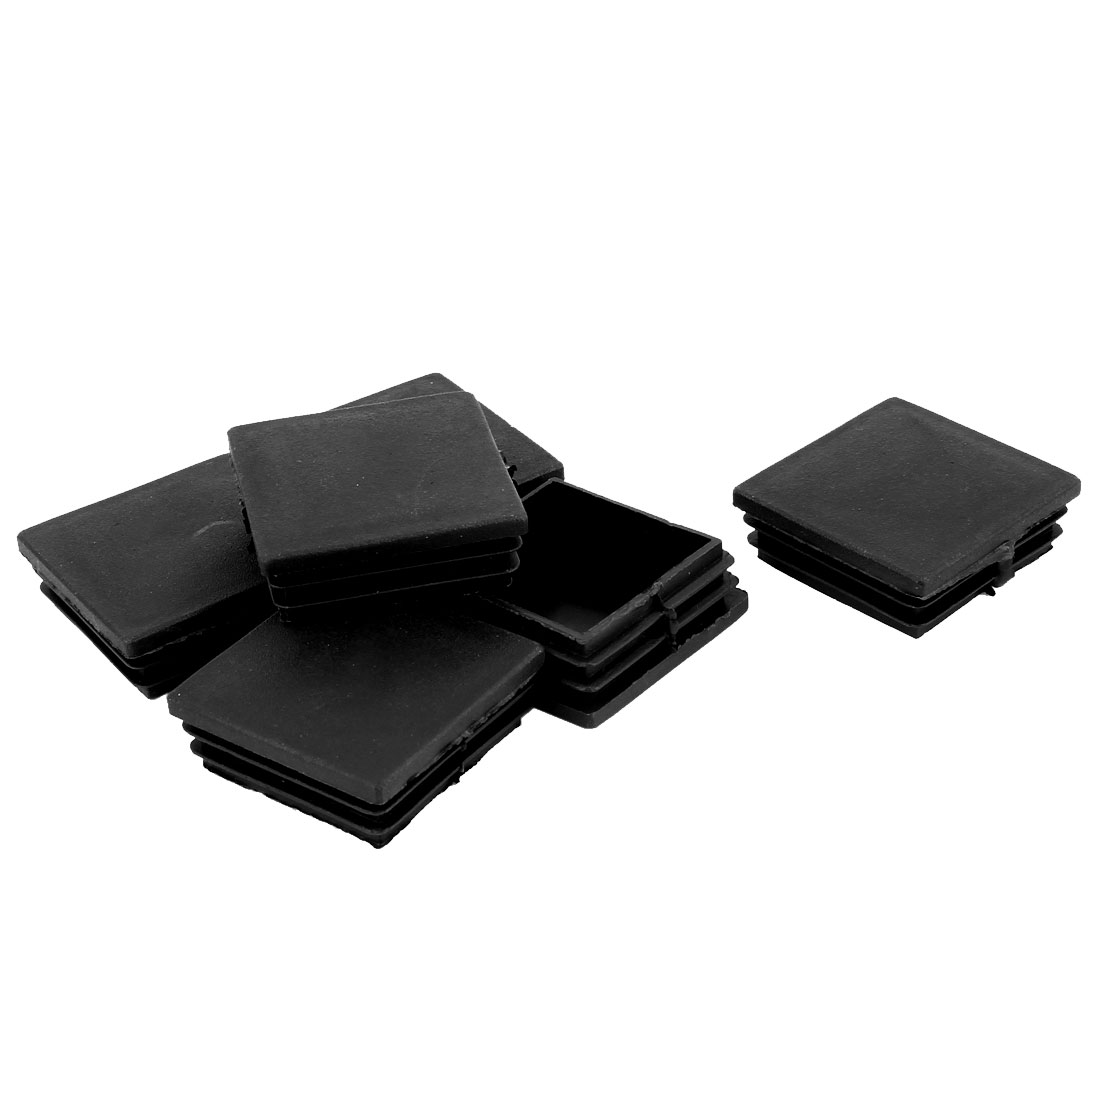 50mm x 50mm Plastic Square Tubing Tube Inserts End Blanking Cover Black 6 Pcs